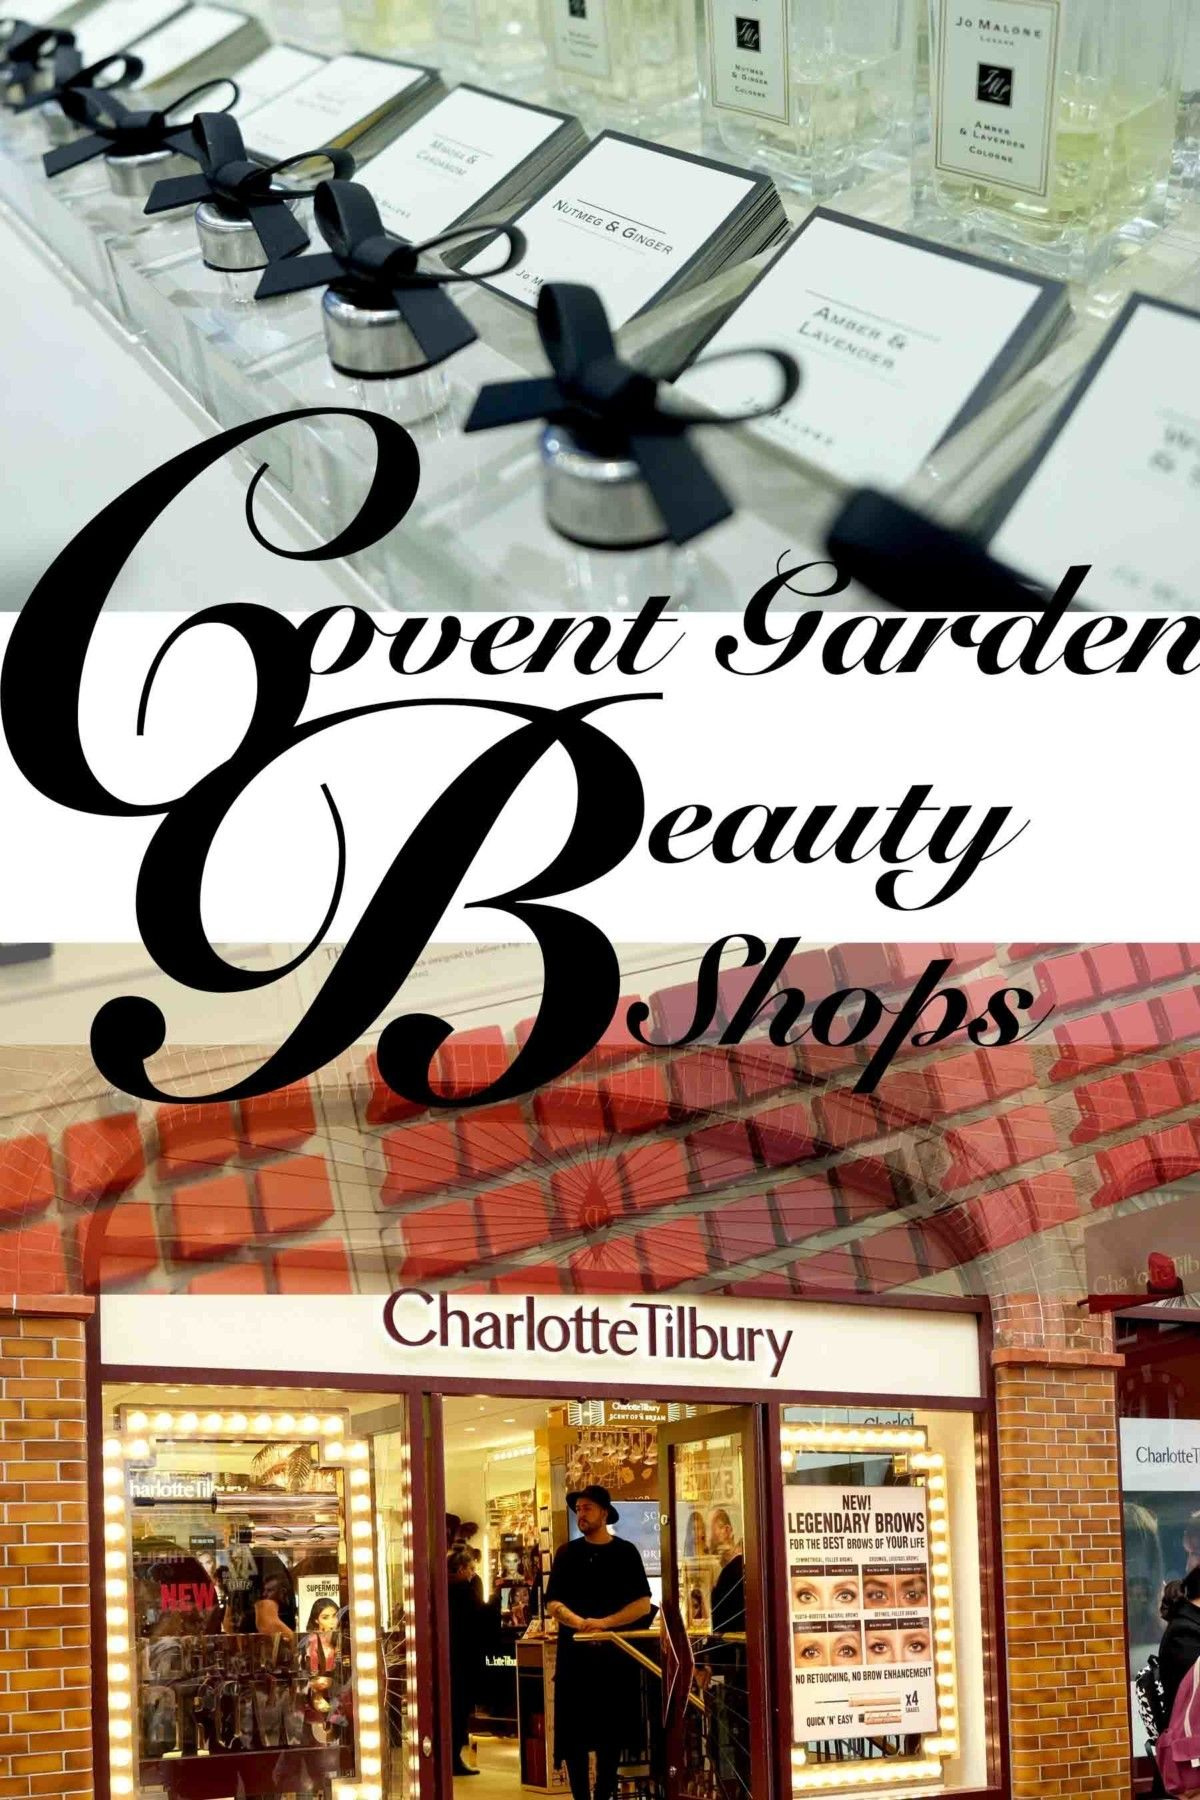 Did you know, Covent Garden is the Heart of Beauty Shops